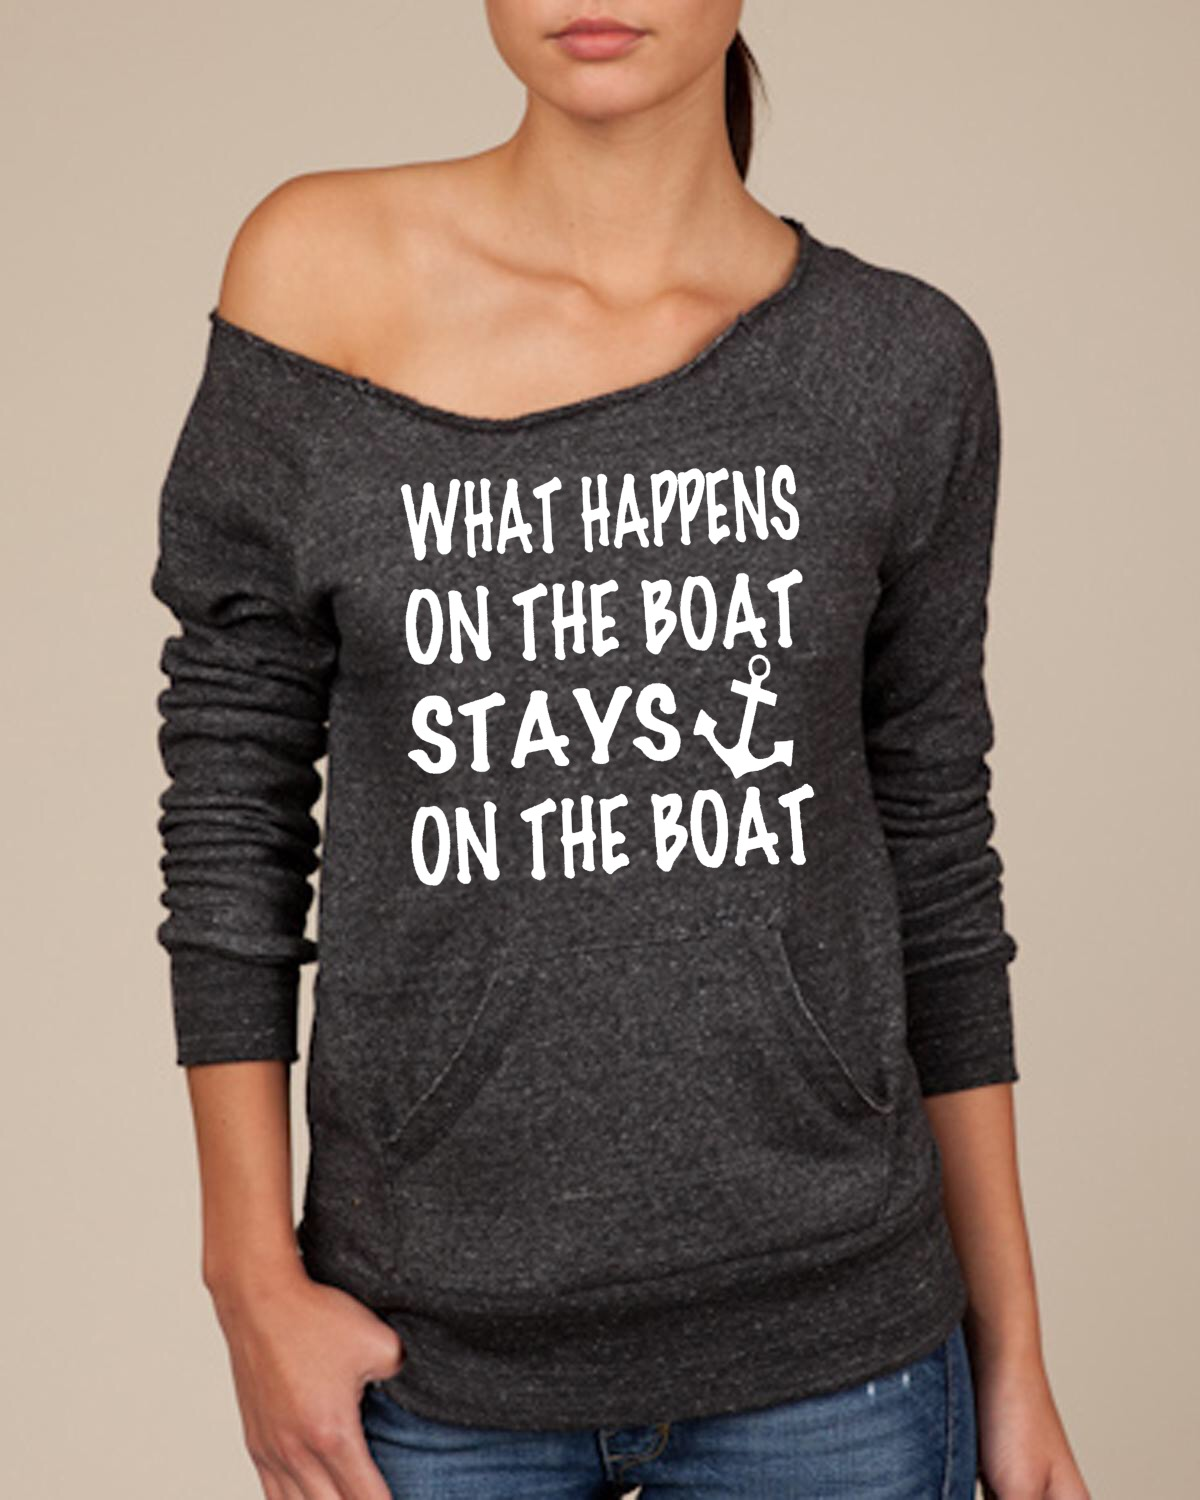 What Happens On The Boat Stays On The Boat.  Women's Scoop Neck Sweatshirt